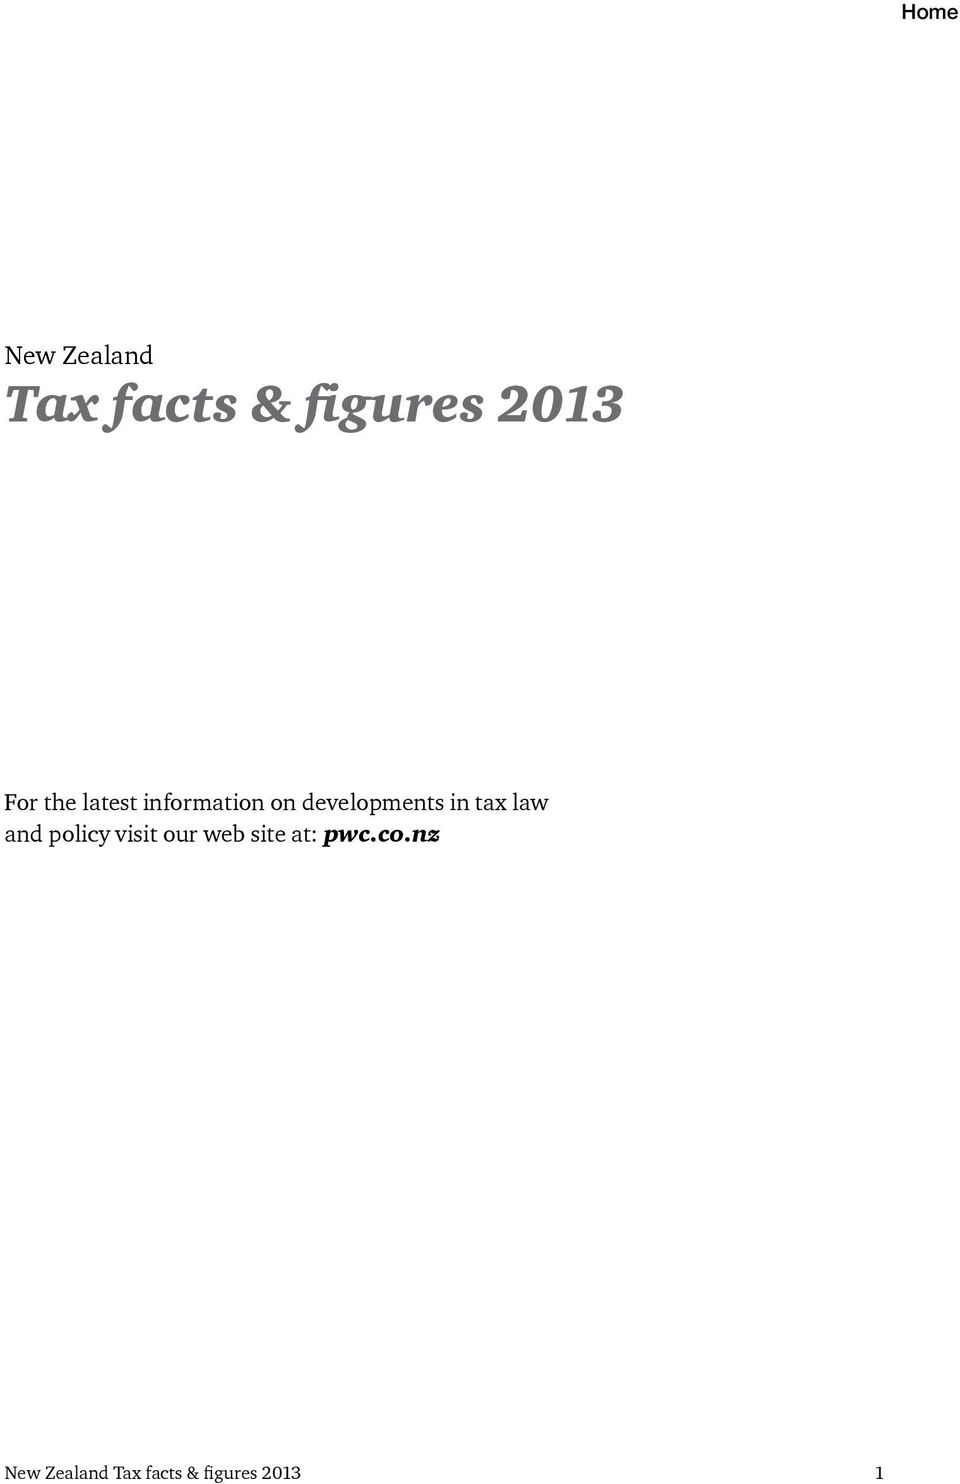 tax law and policy visit our web site at: